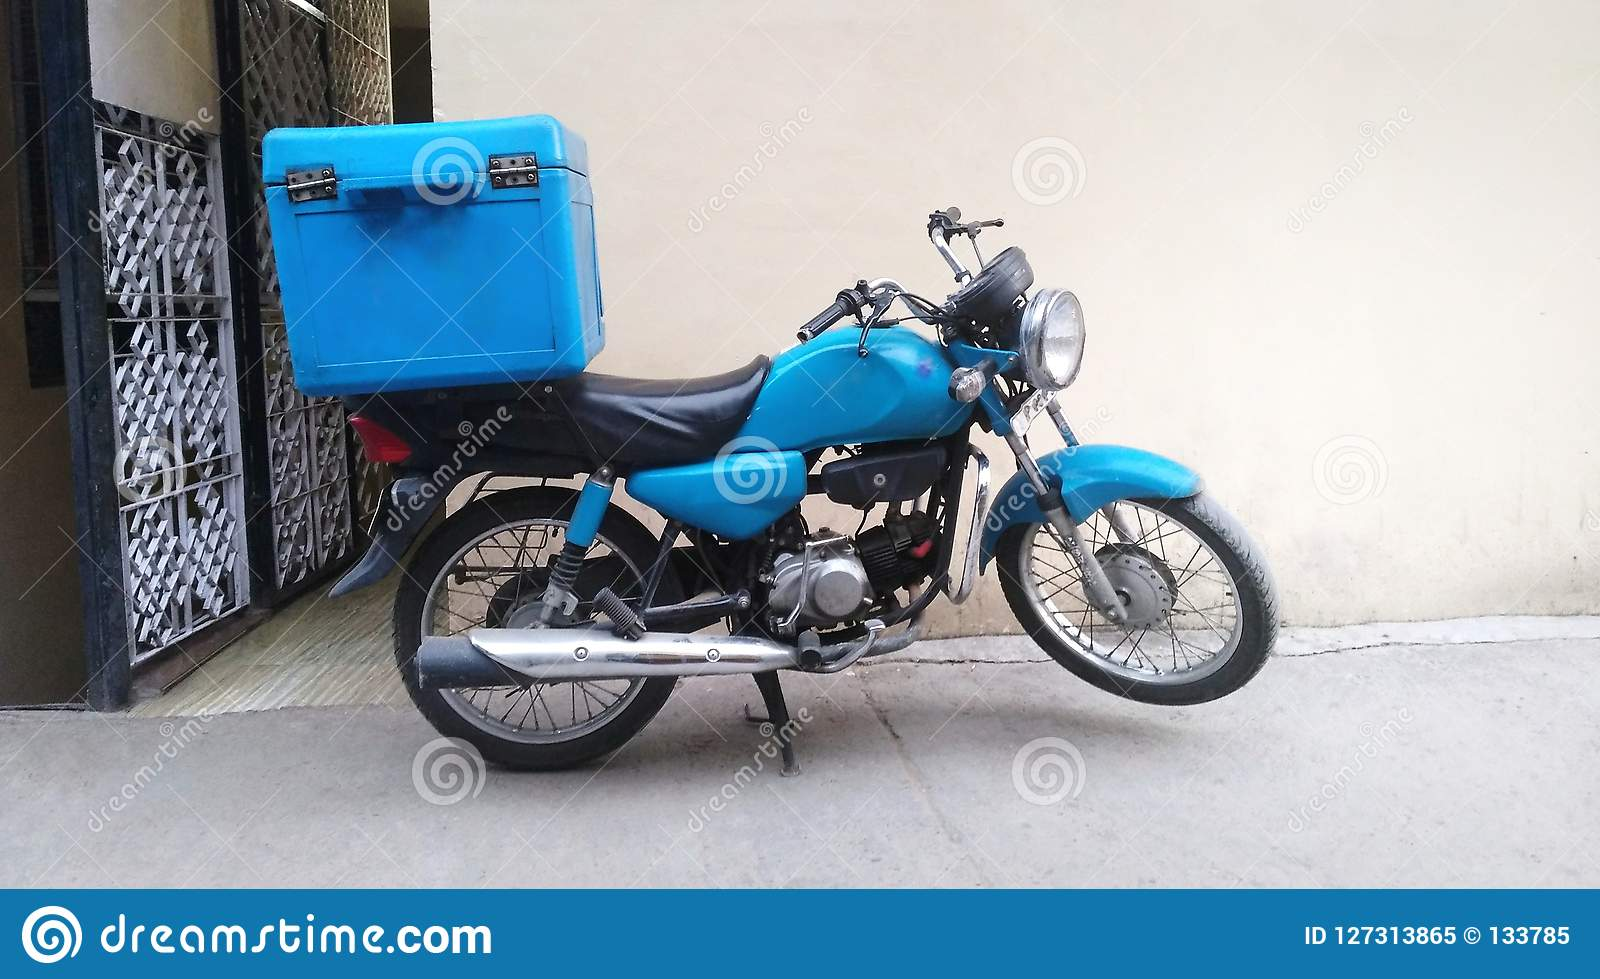 Motorcycle for food delivery